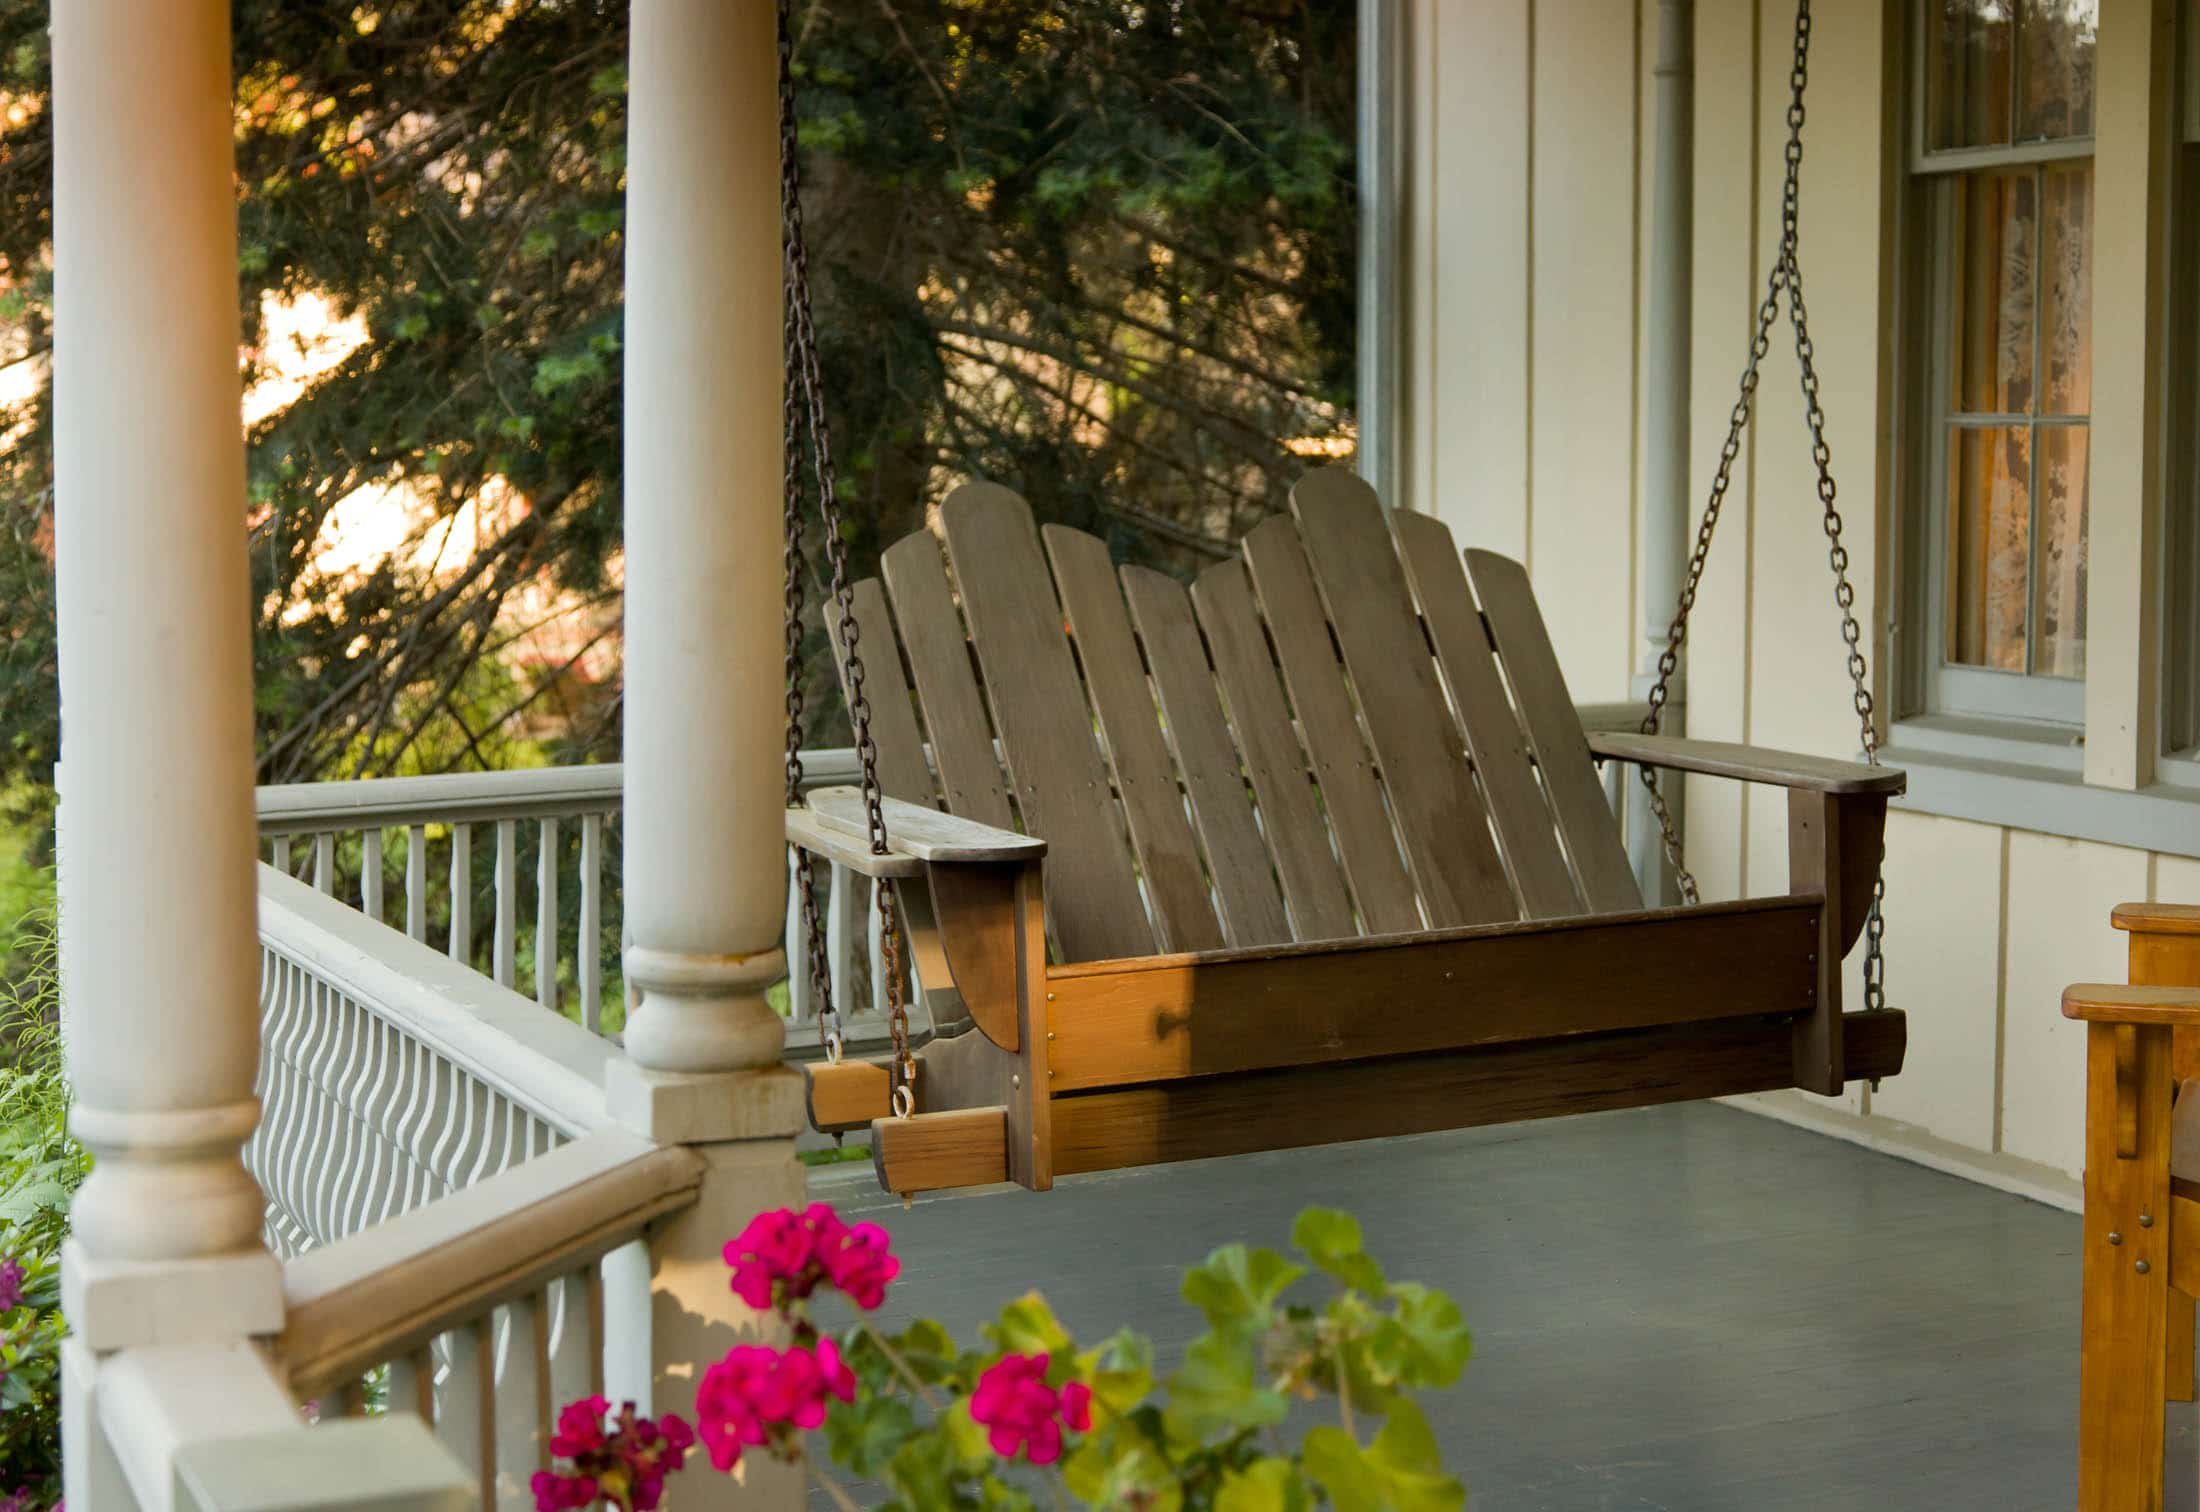 Porch swing at Gothic Eves